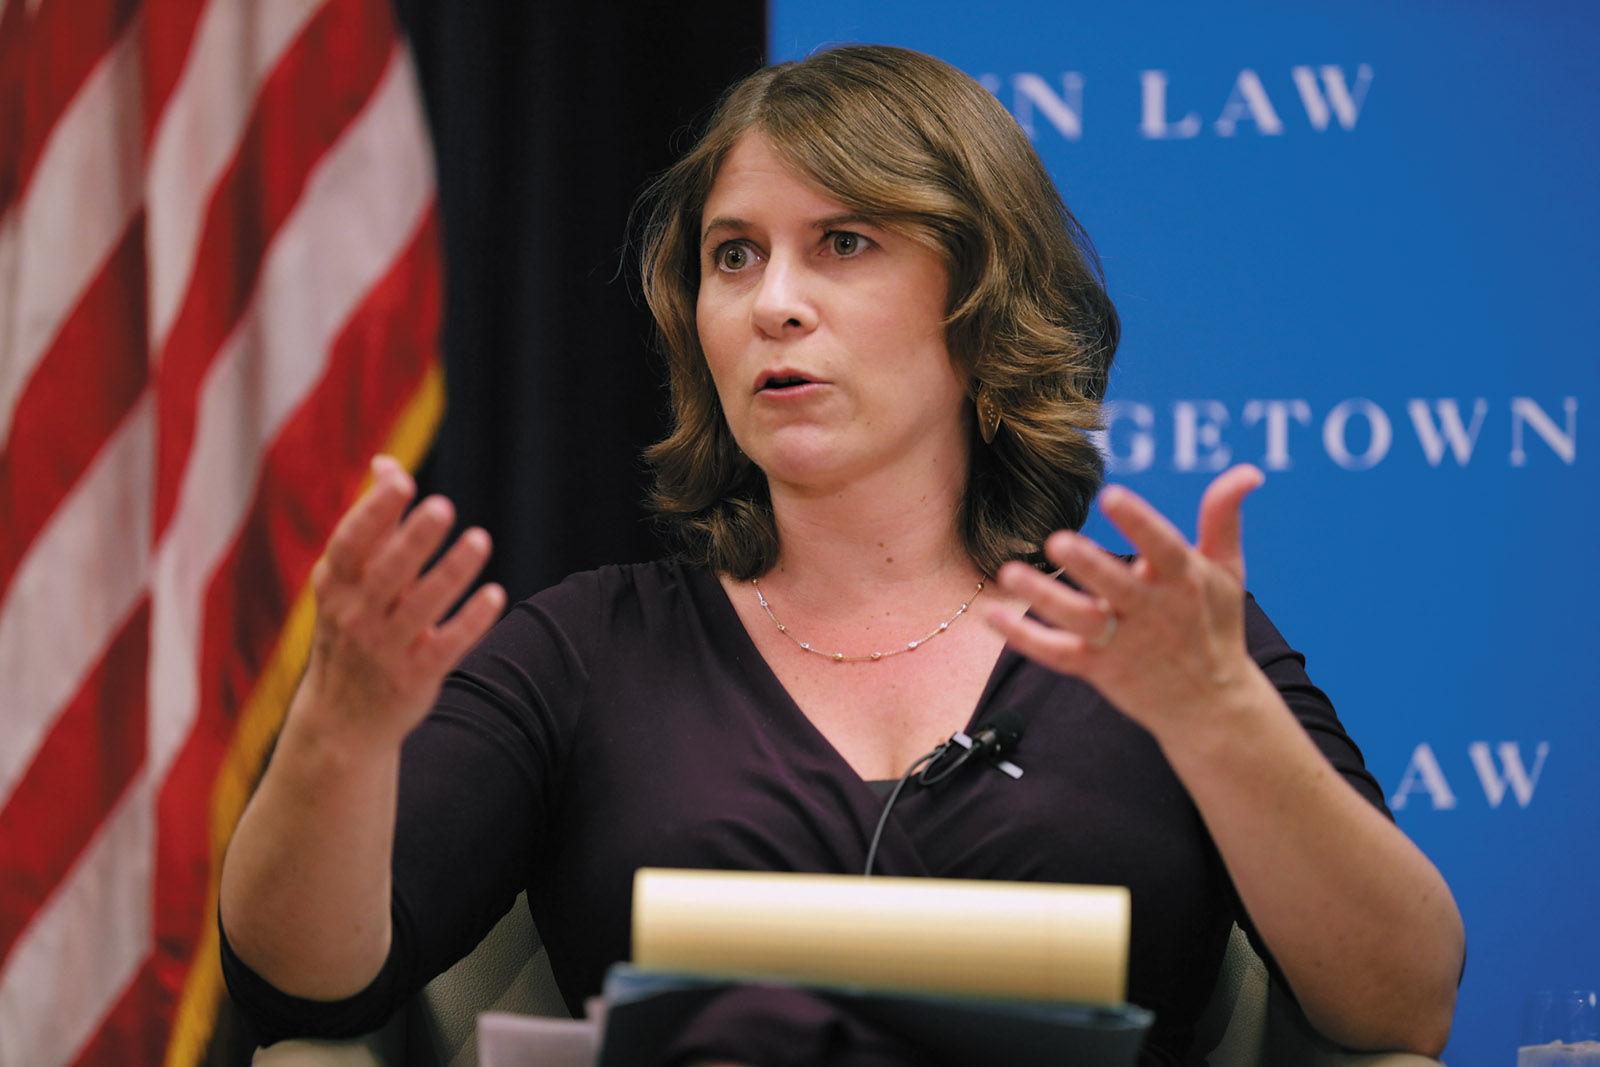 Rosa Brooks moderating a discussion on 'the next generation's human rights challenges' during a program that was cosponsored by The New York Review, Georgetown University Law Center, Washington, D.C., April 2014